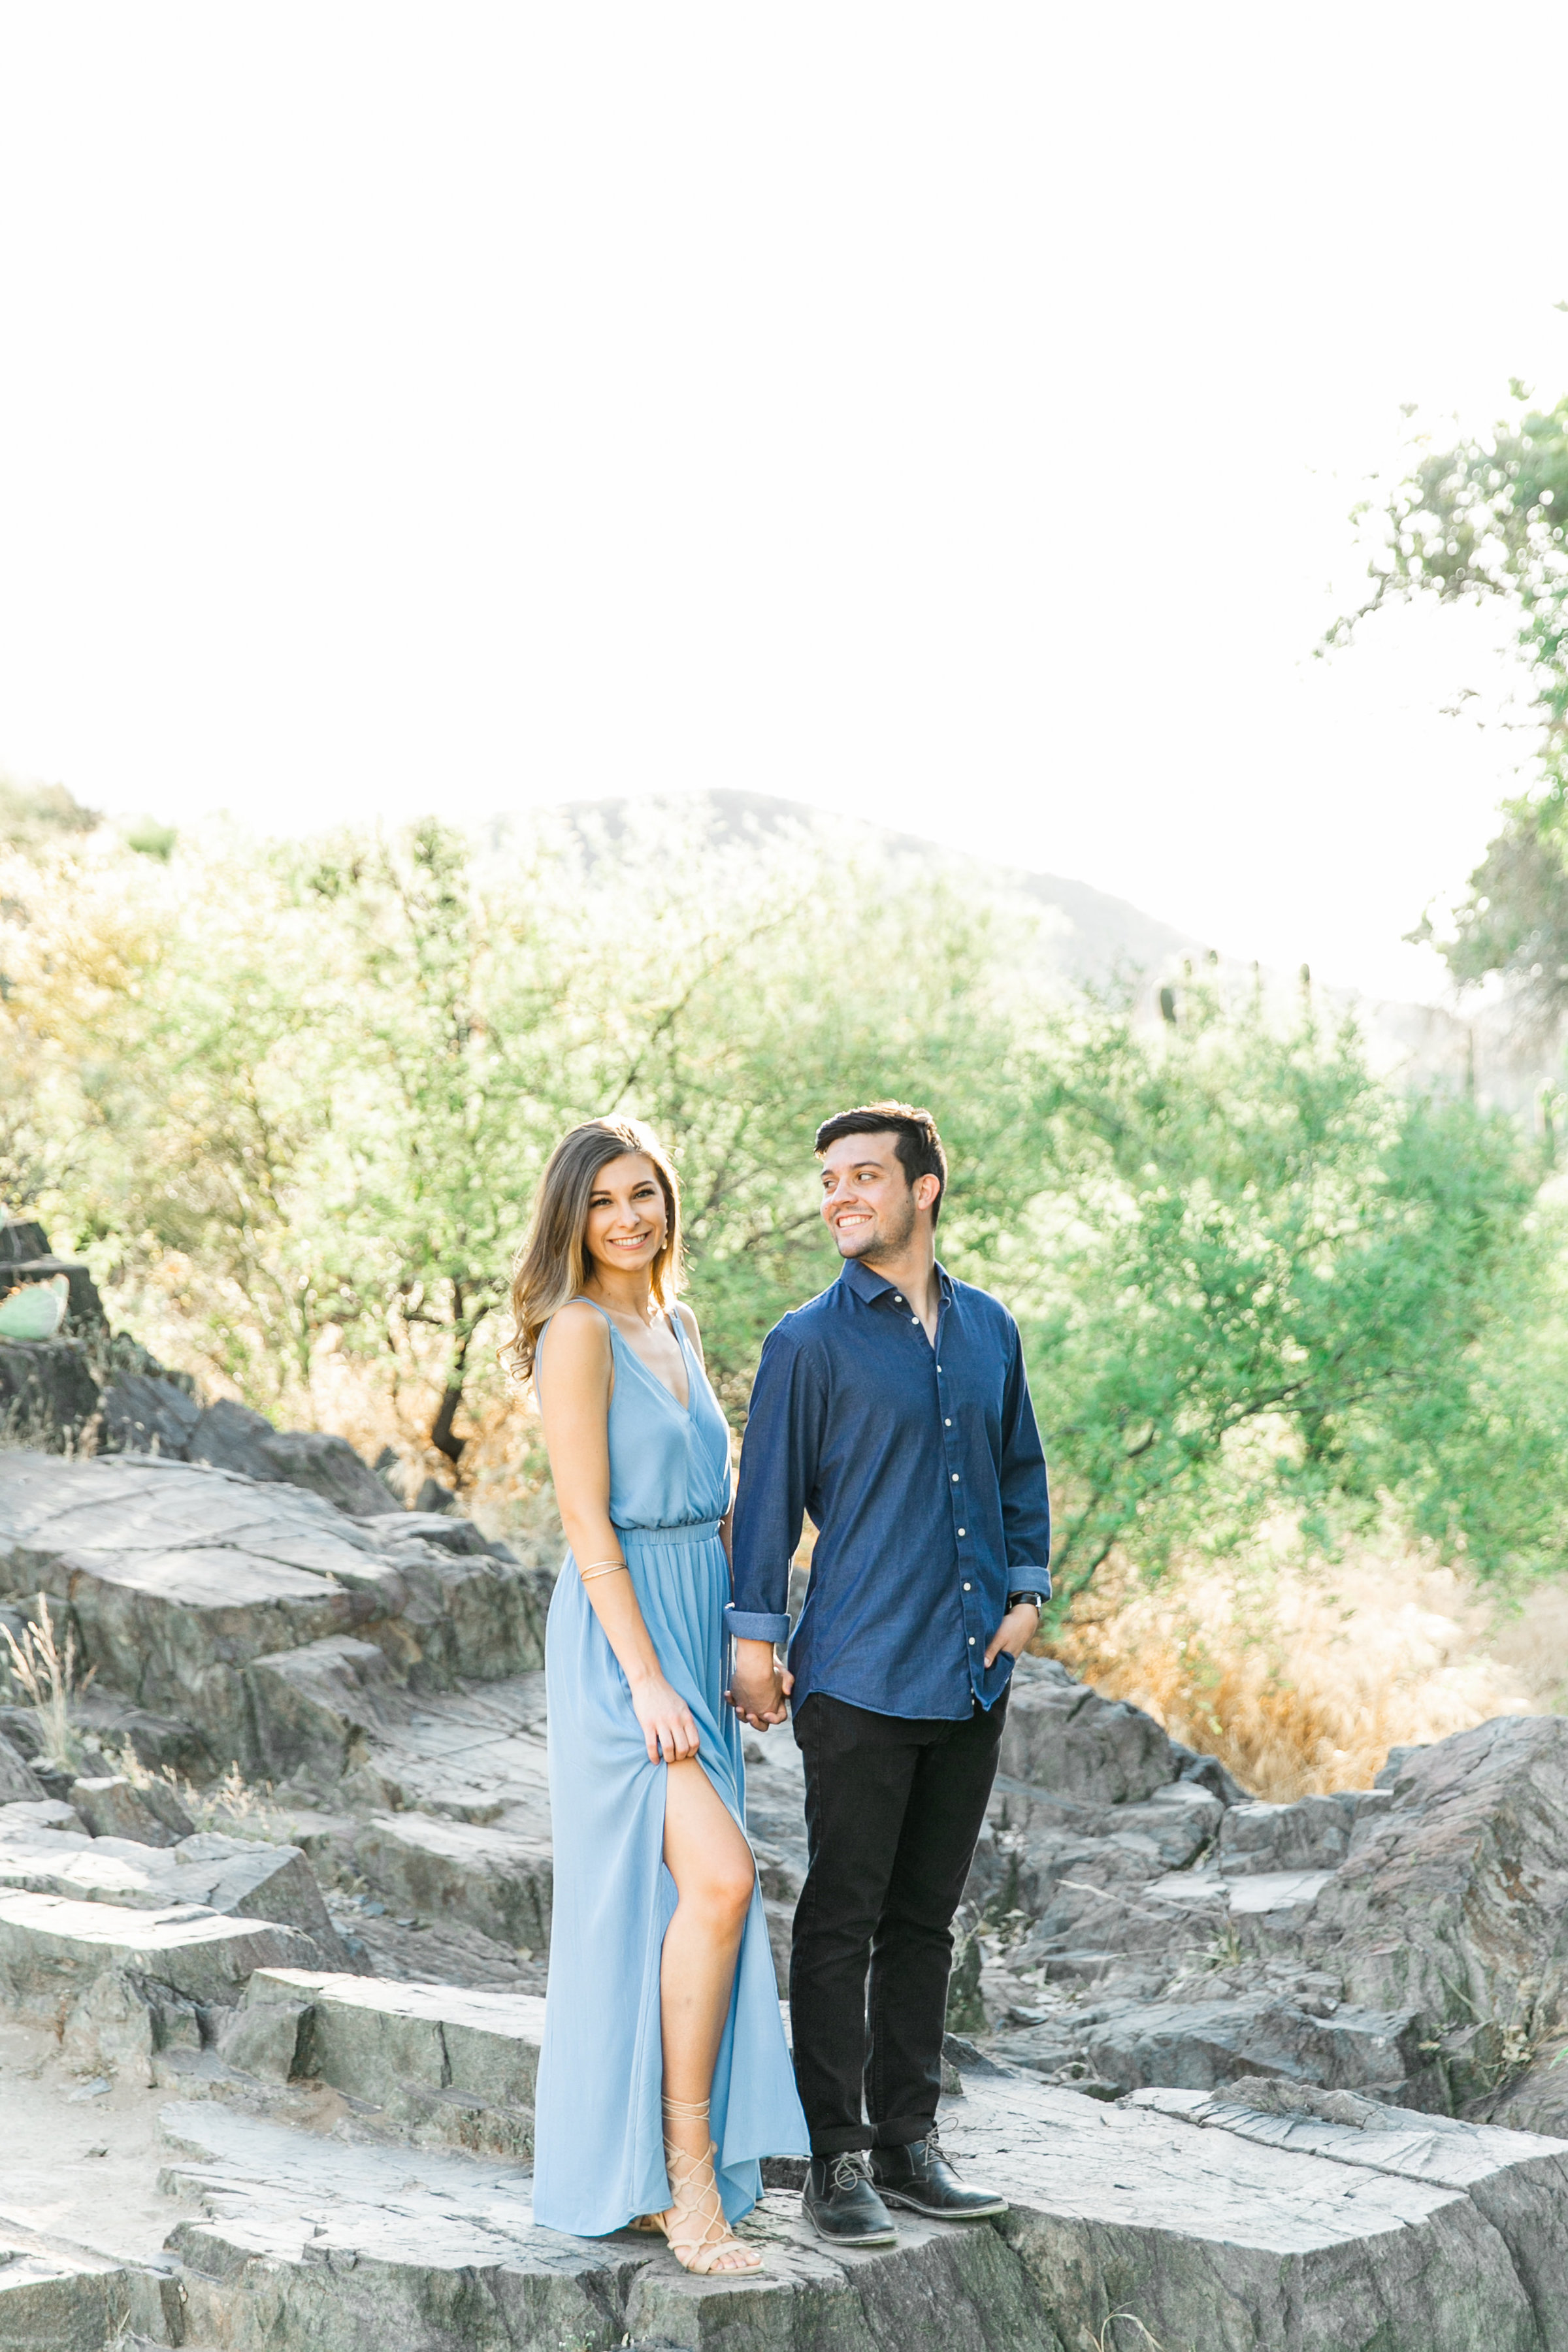 Karlie Colleen Photography - Arizona Desert Engagement - Brynne & Josh -13